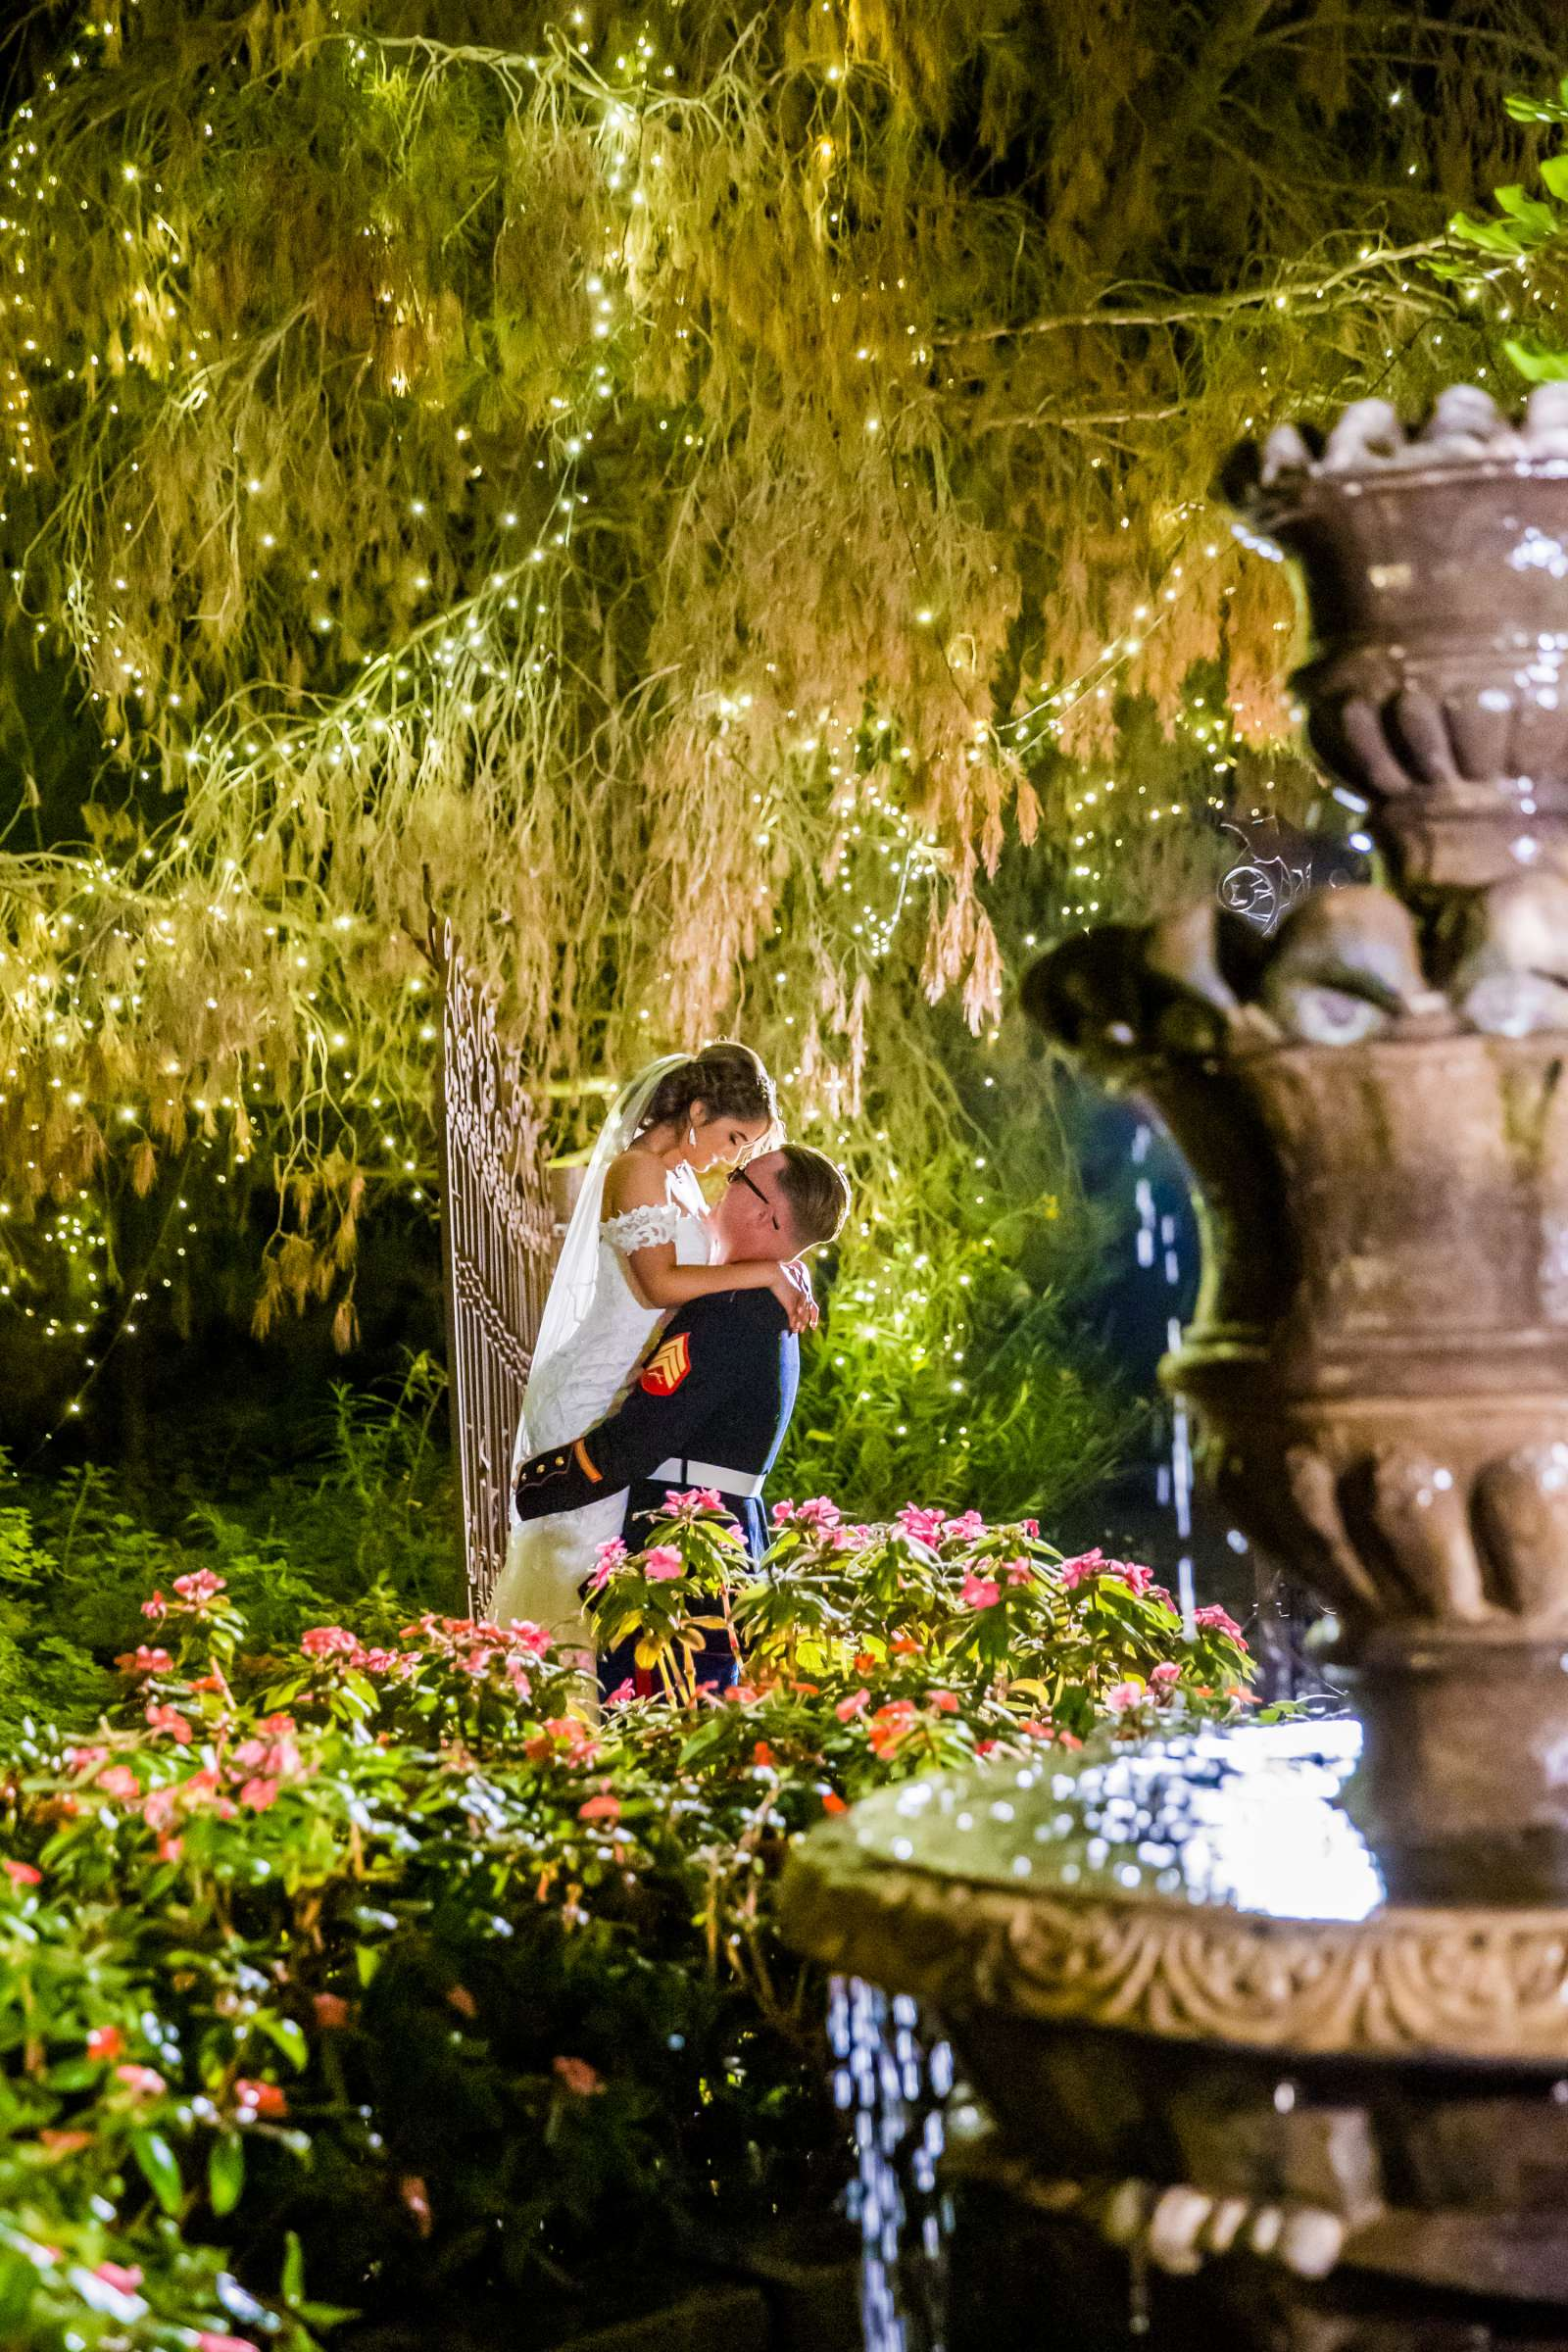 Ethereal Gardens Wedding, Danielle and Ben Wedding Photo #1 by True Photography